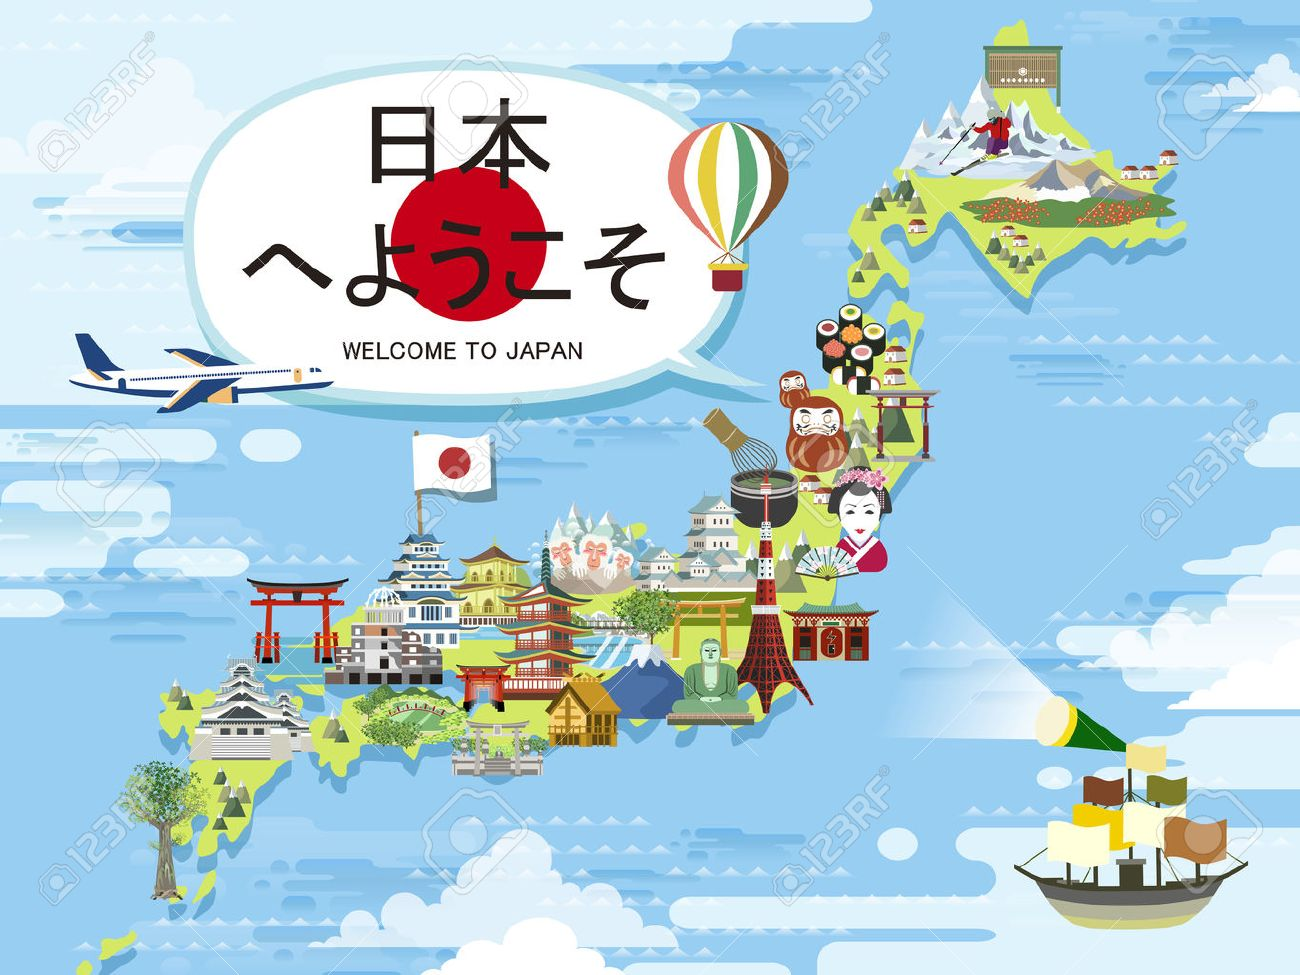 attractive Japan travel map design - Welcome to Japan in Japanese words - 50046035